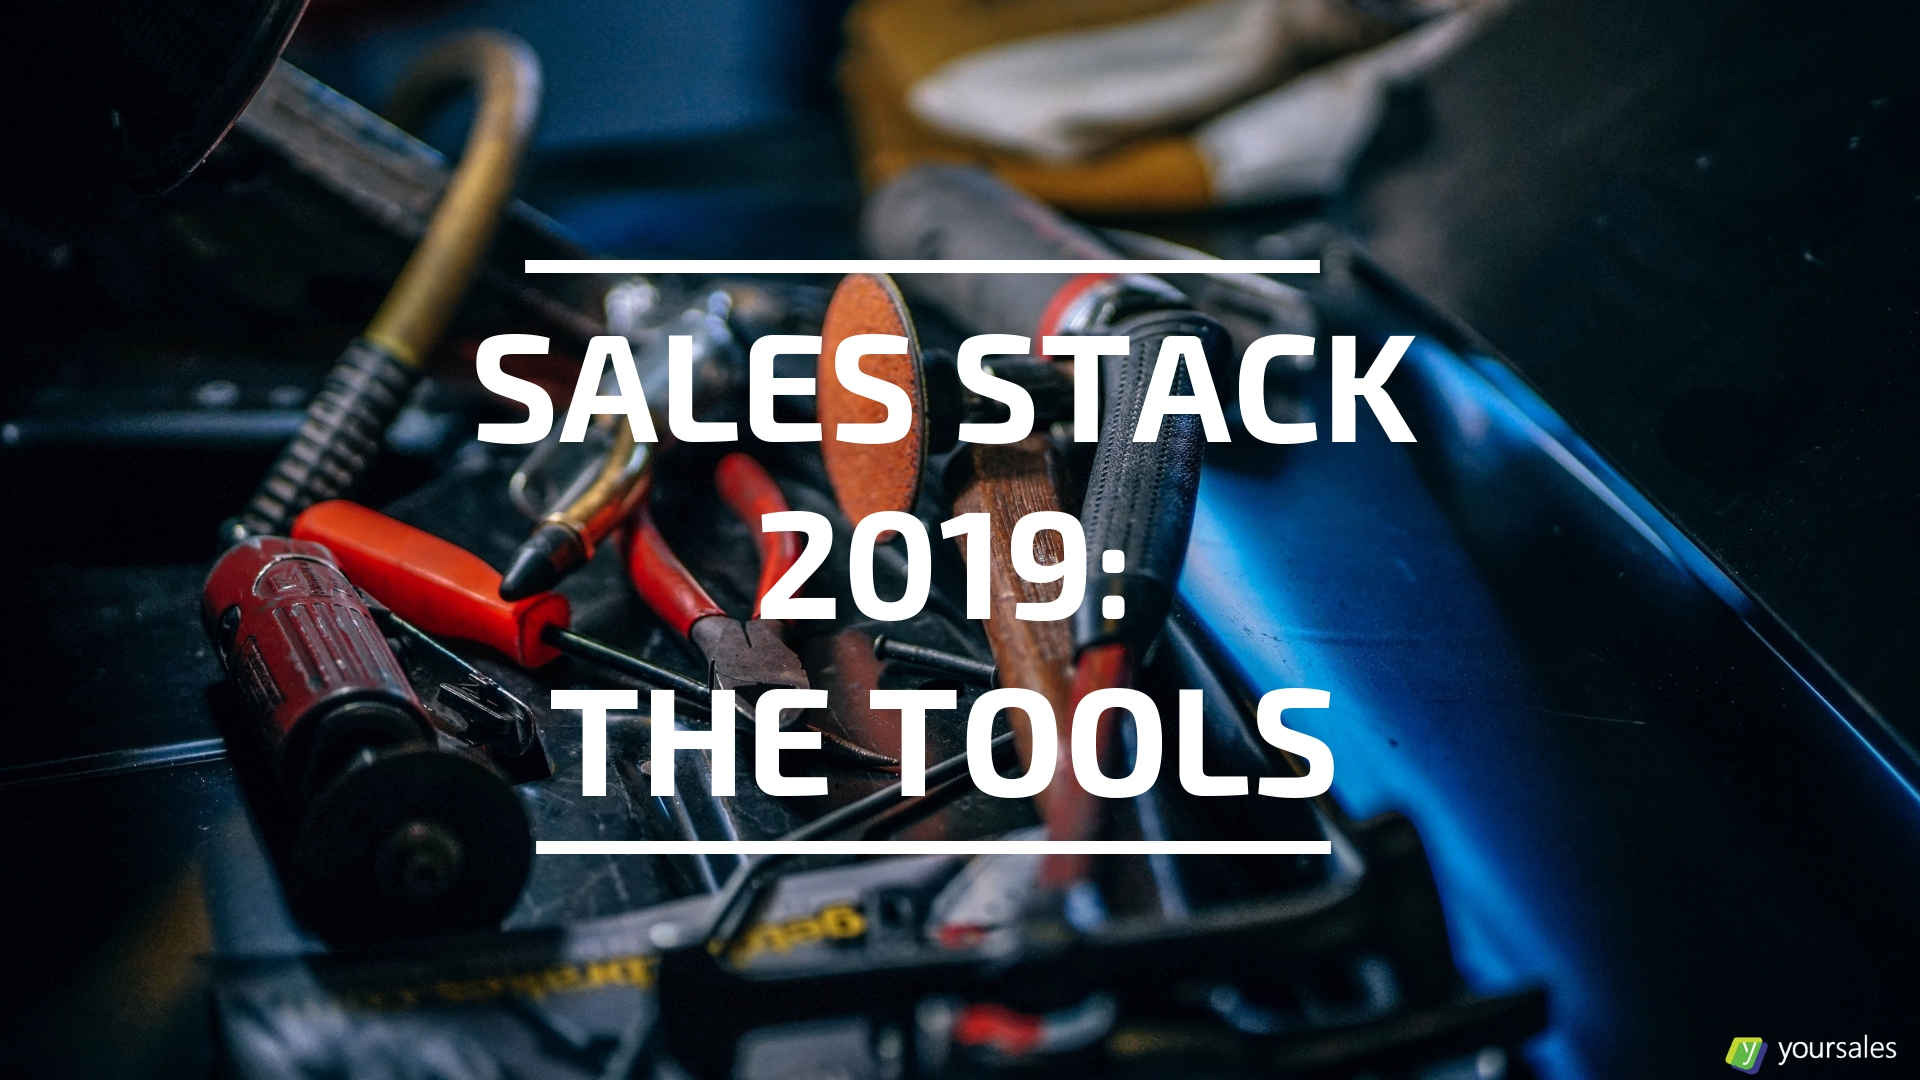 Sales Stack 2019: Sales Tools in the Sales Stack for B2B Selling